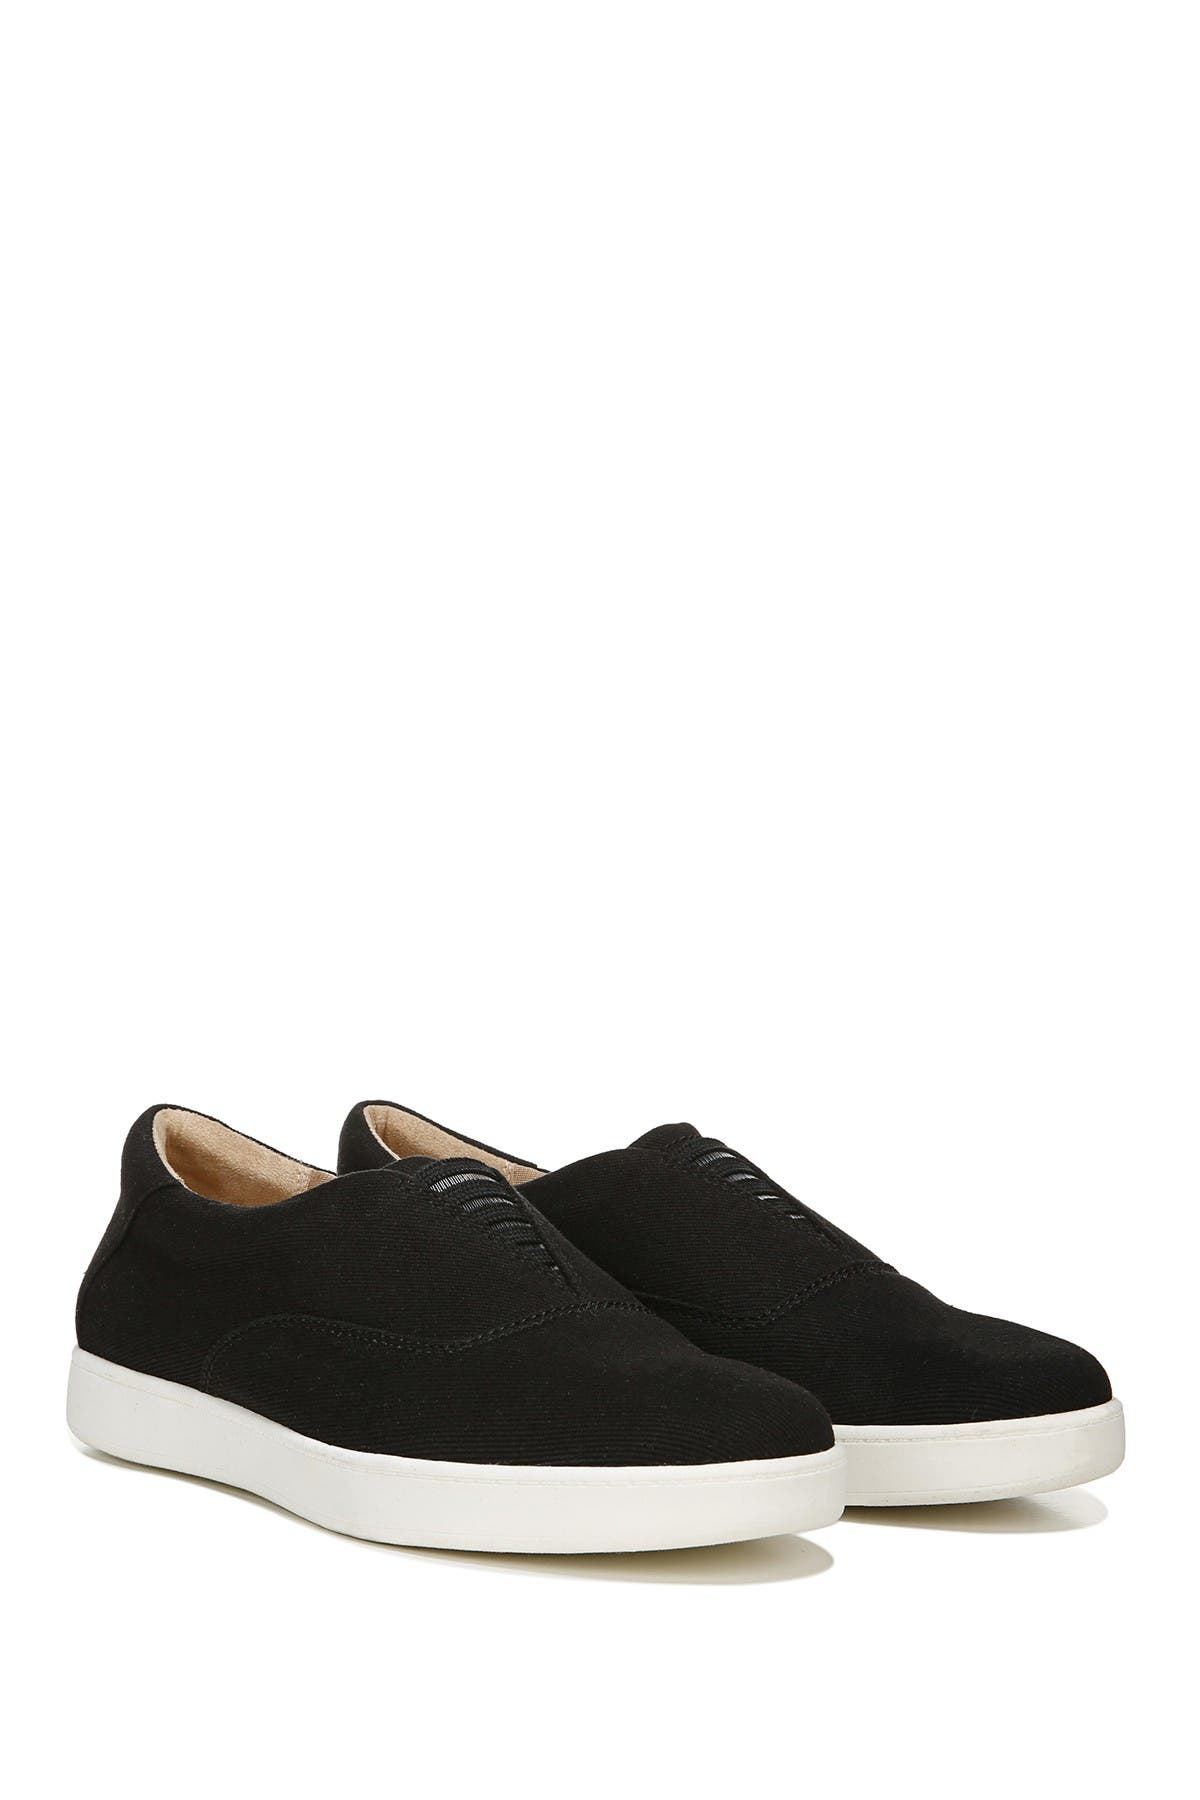 Image of LifeStride Emily Slip-On Sneaker